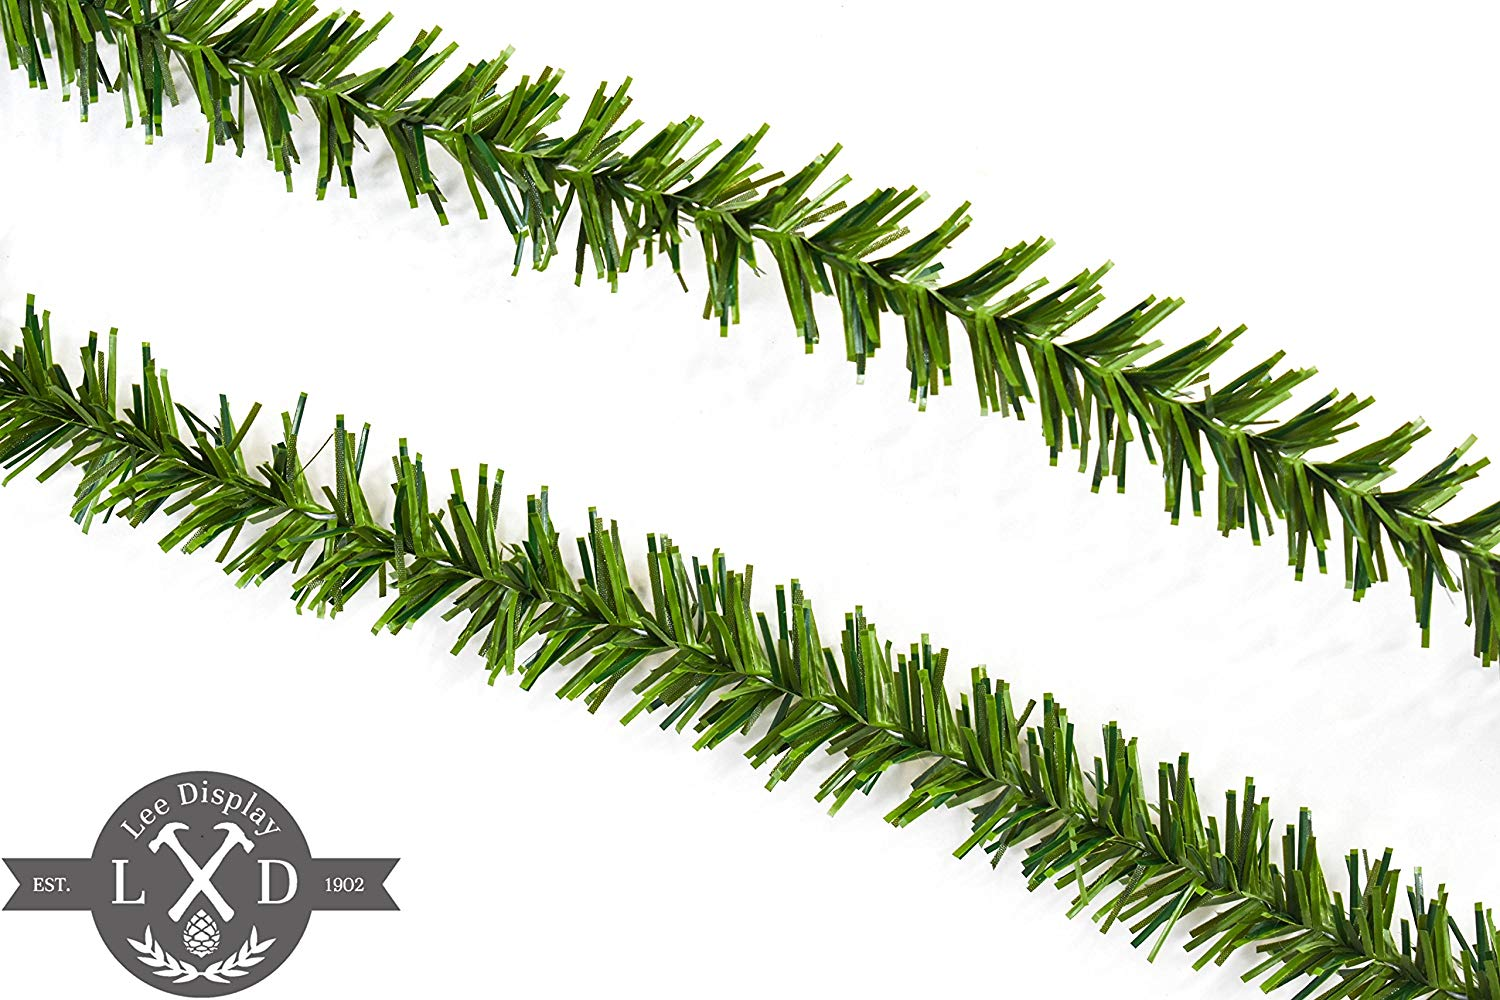 25ft alpine green tinsel garland alpine green tinsel garland 3in width tinsel garlands for christmas decorations - Outdoor Tinsel Christmas Decorations